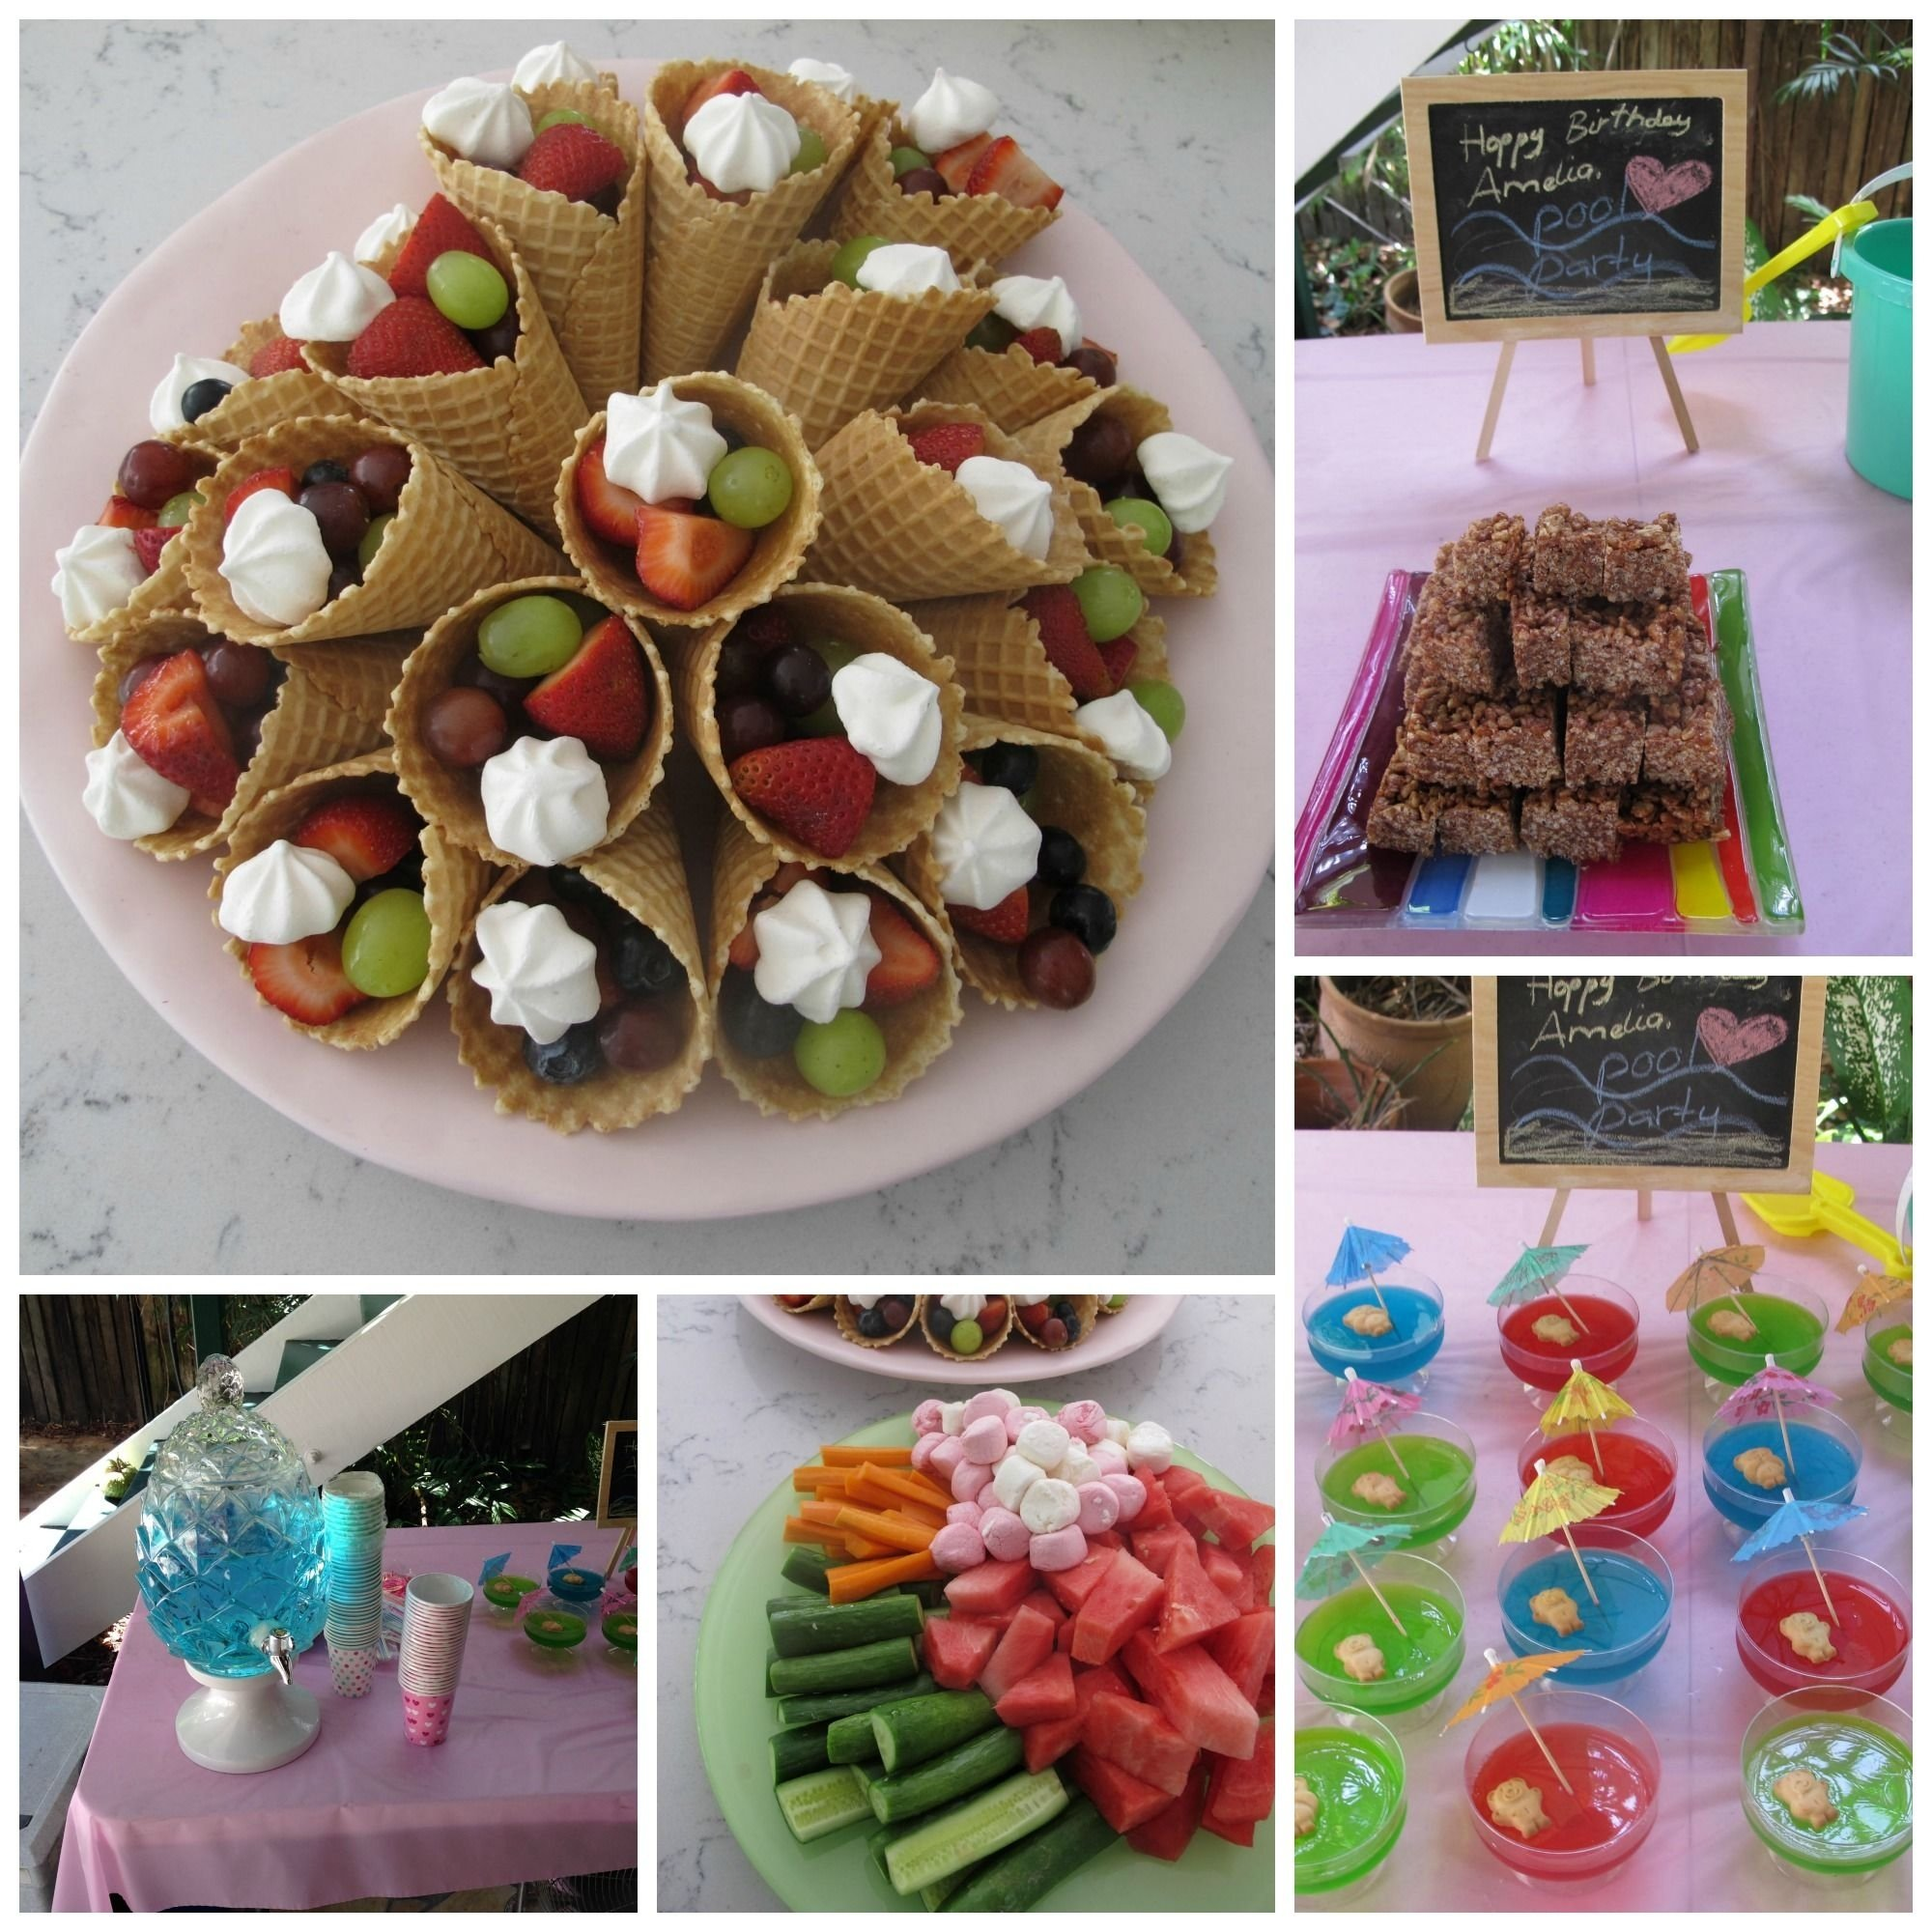 10 Stylish Pool Party Food Ideas For Kids birthday pool party tips tricks and cake hint have wine kid 2020